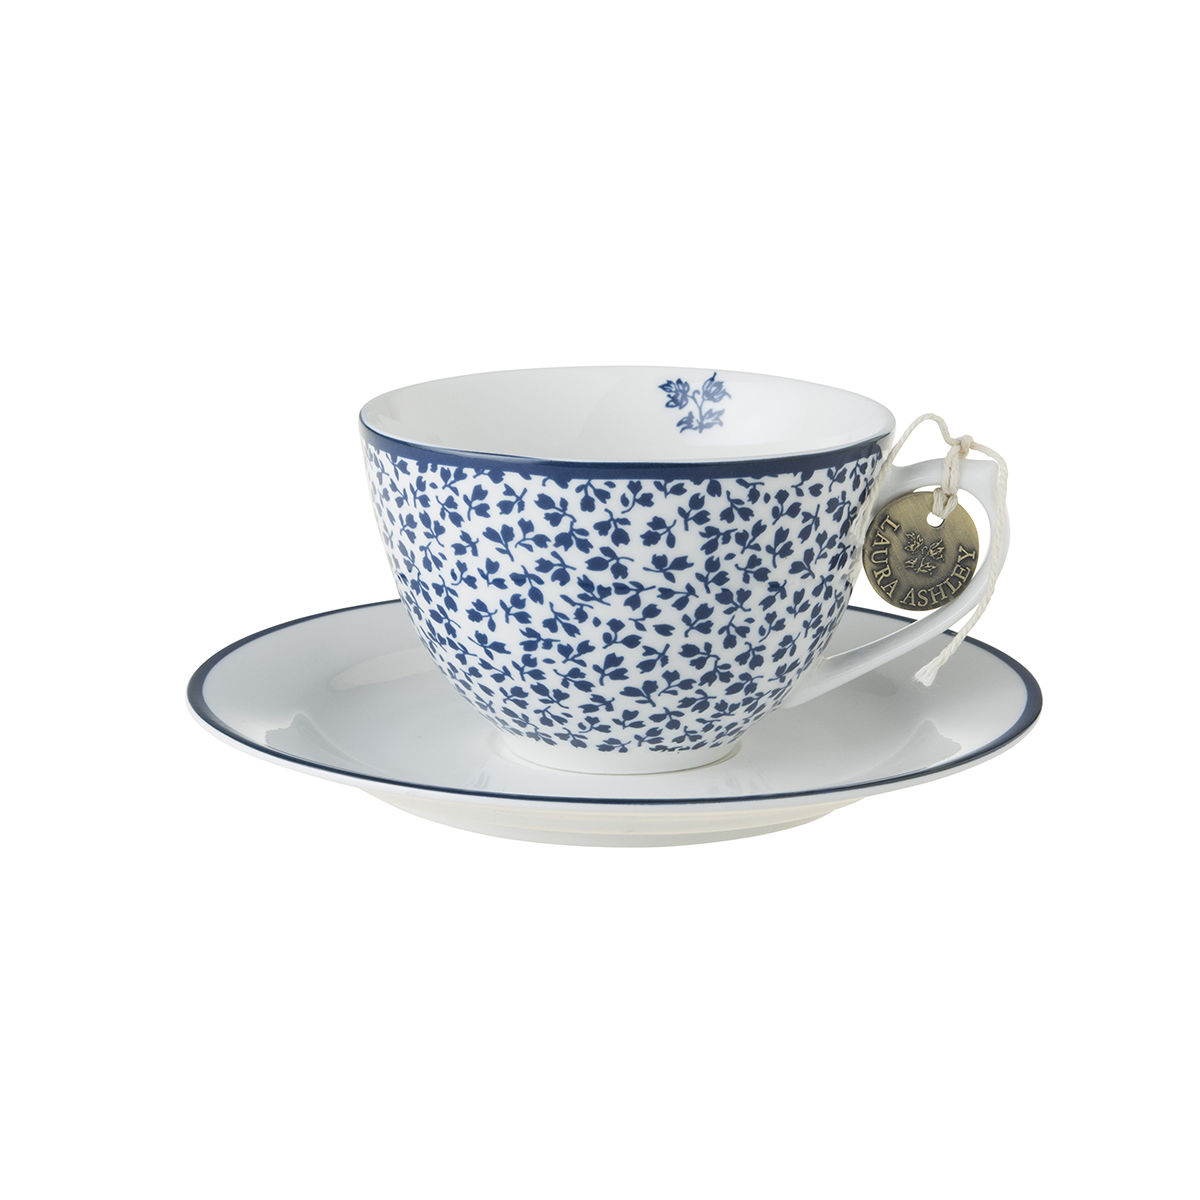 Laura Ashley 8.8oz Cup and Saucer Floris - product images  of